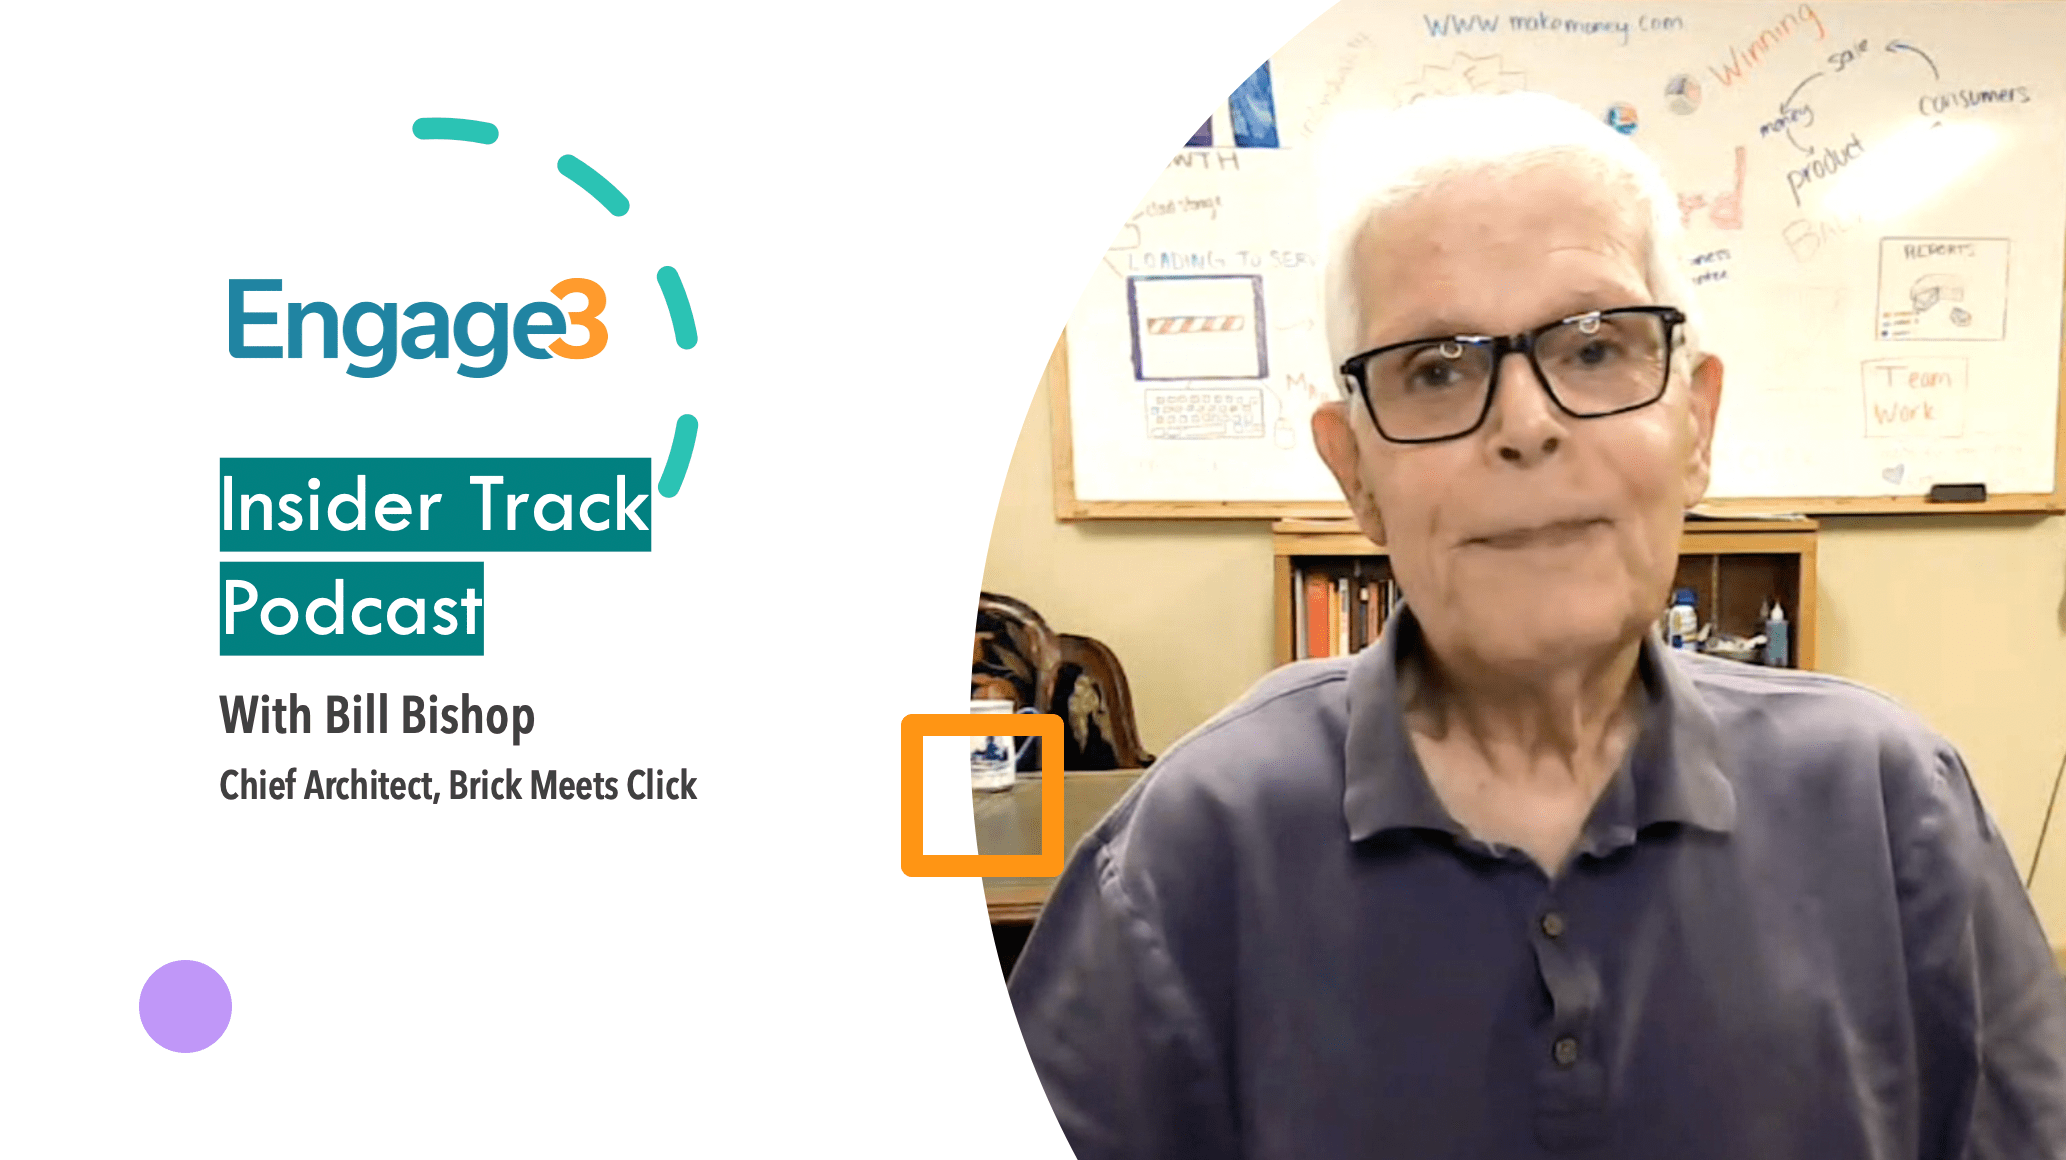 Engage3 Podcast: Bill Bishop on Online Grocery